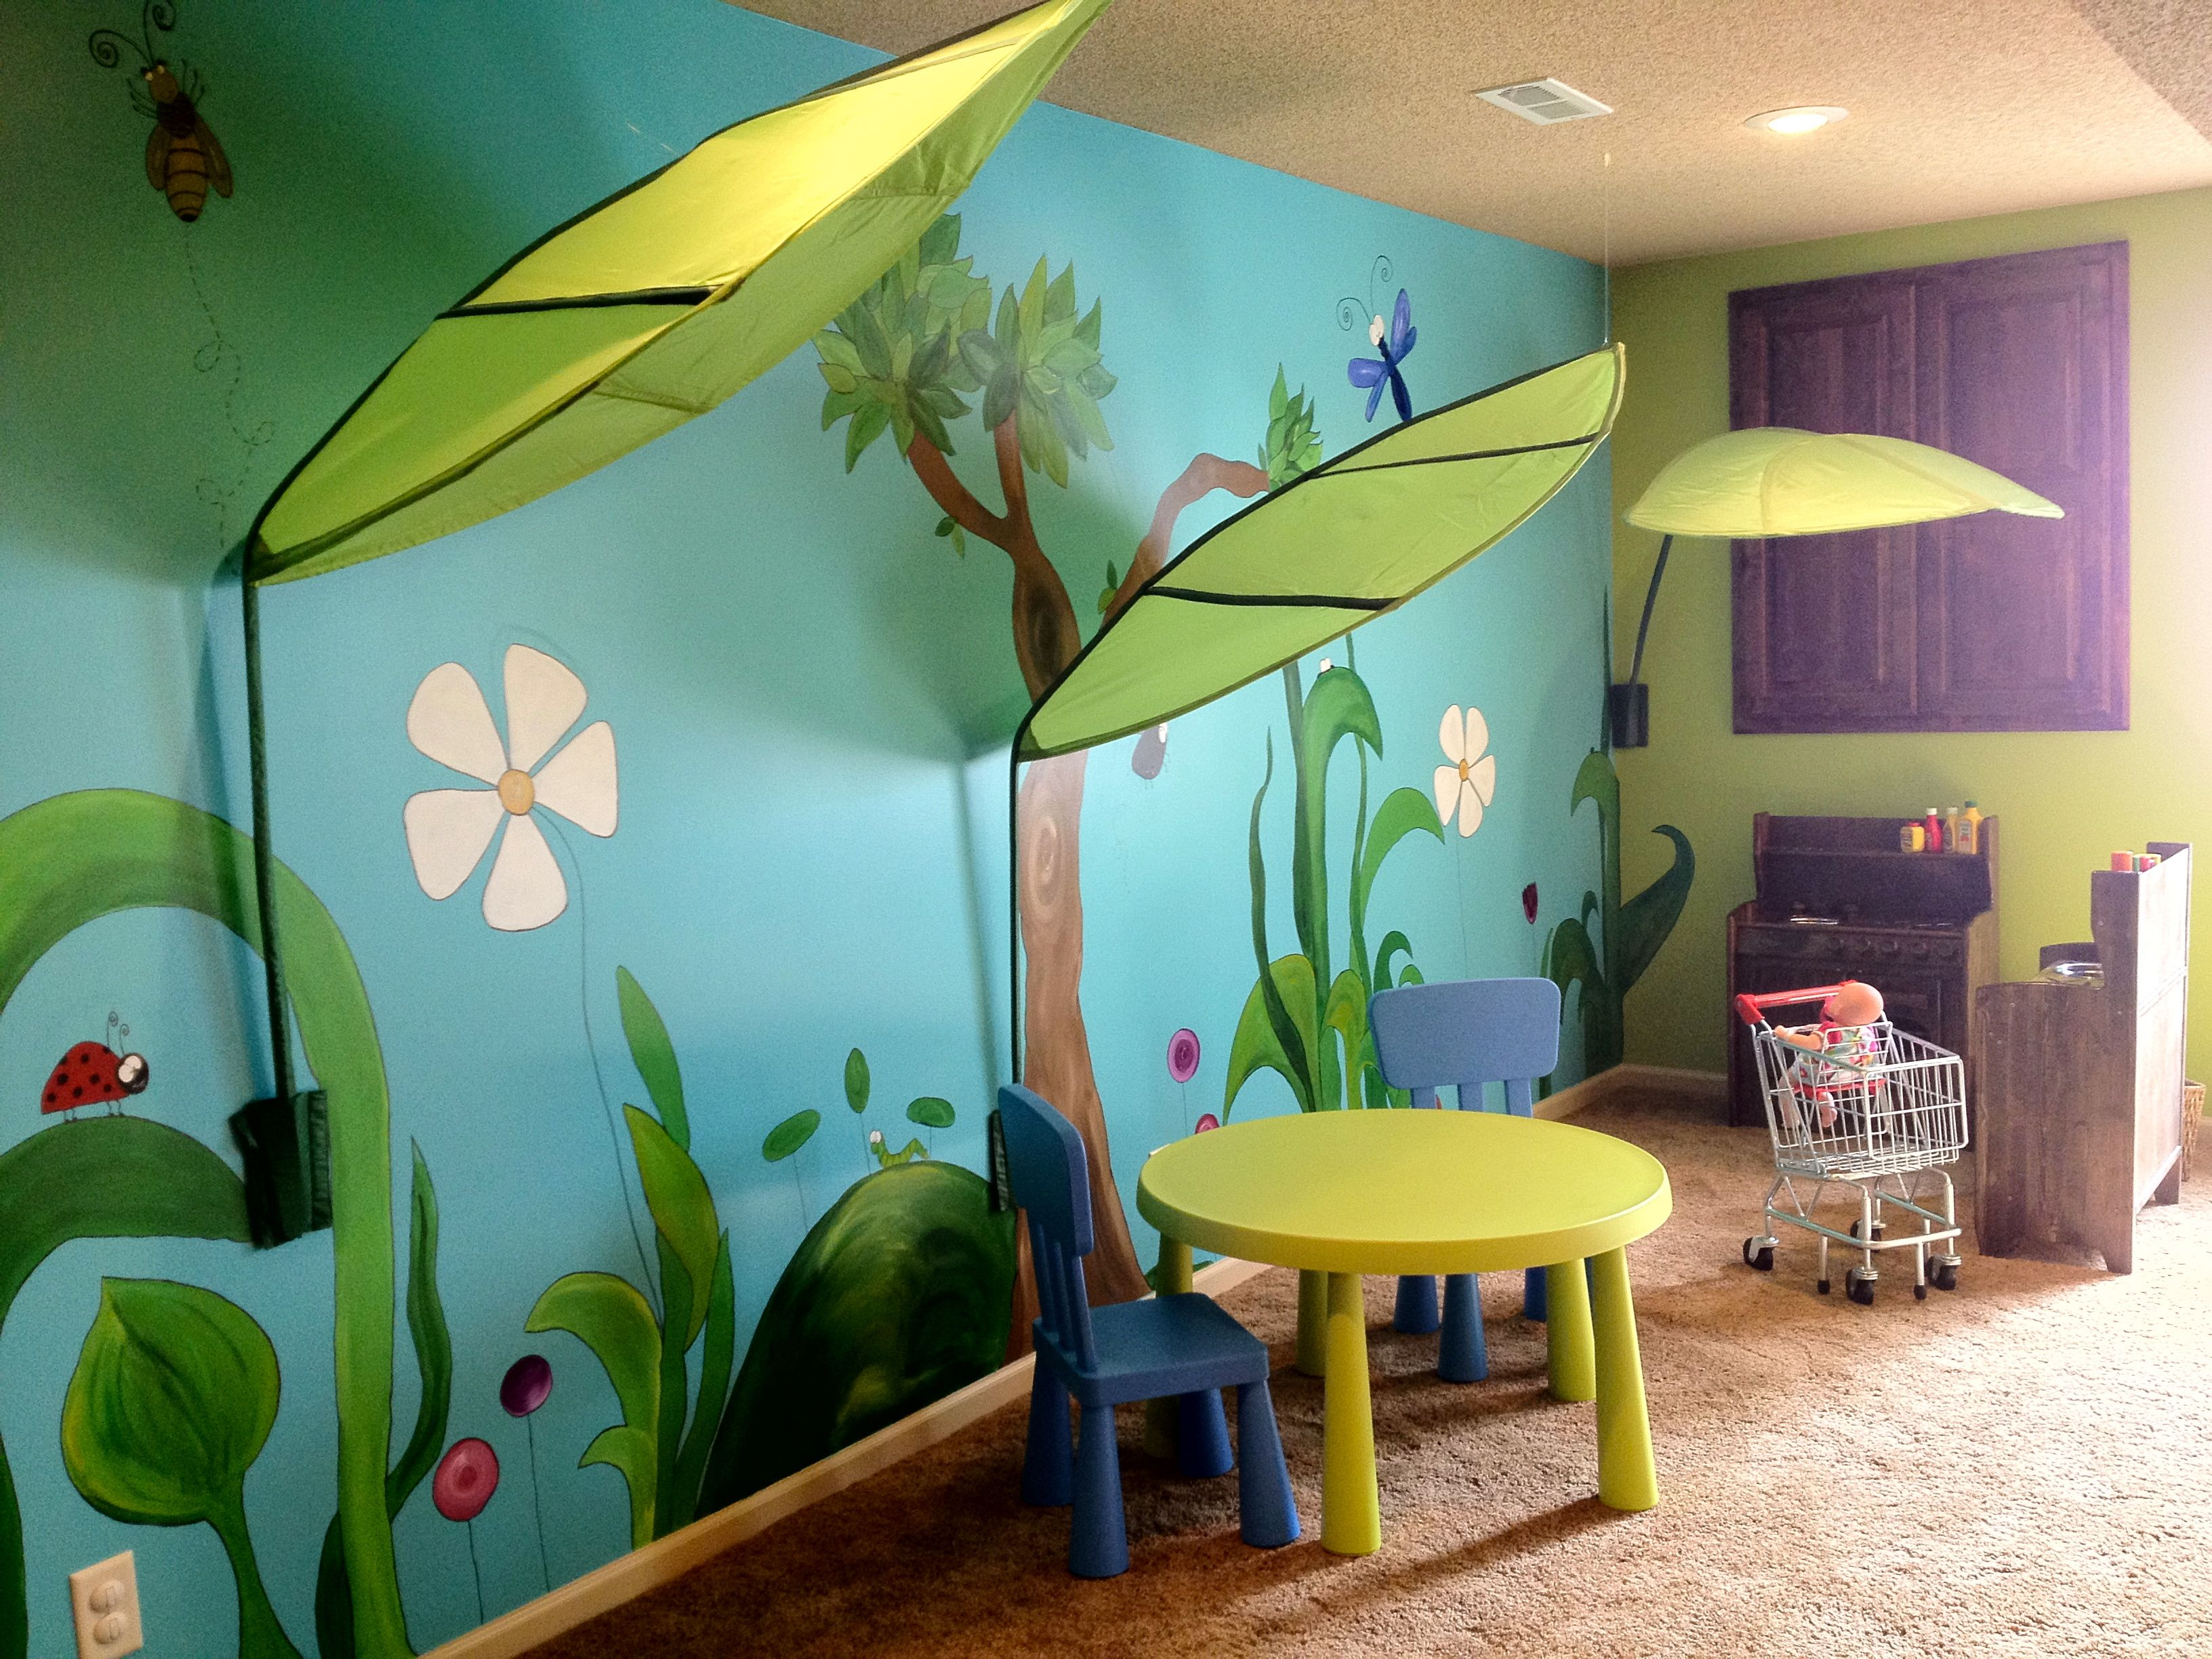 This Is The Hand Painted Mural I Created For Our New Space - Home daycare design ideas